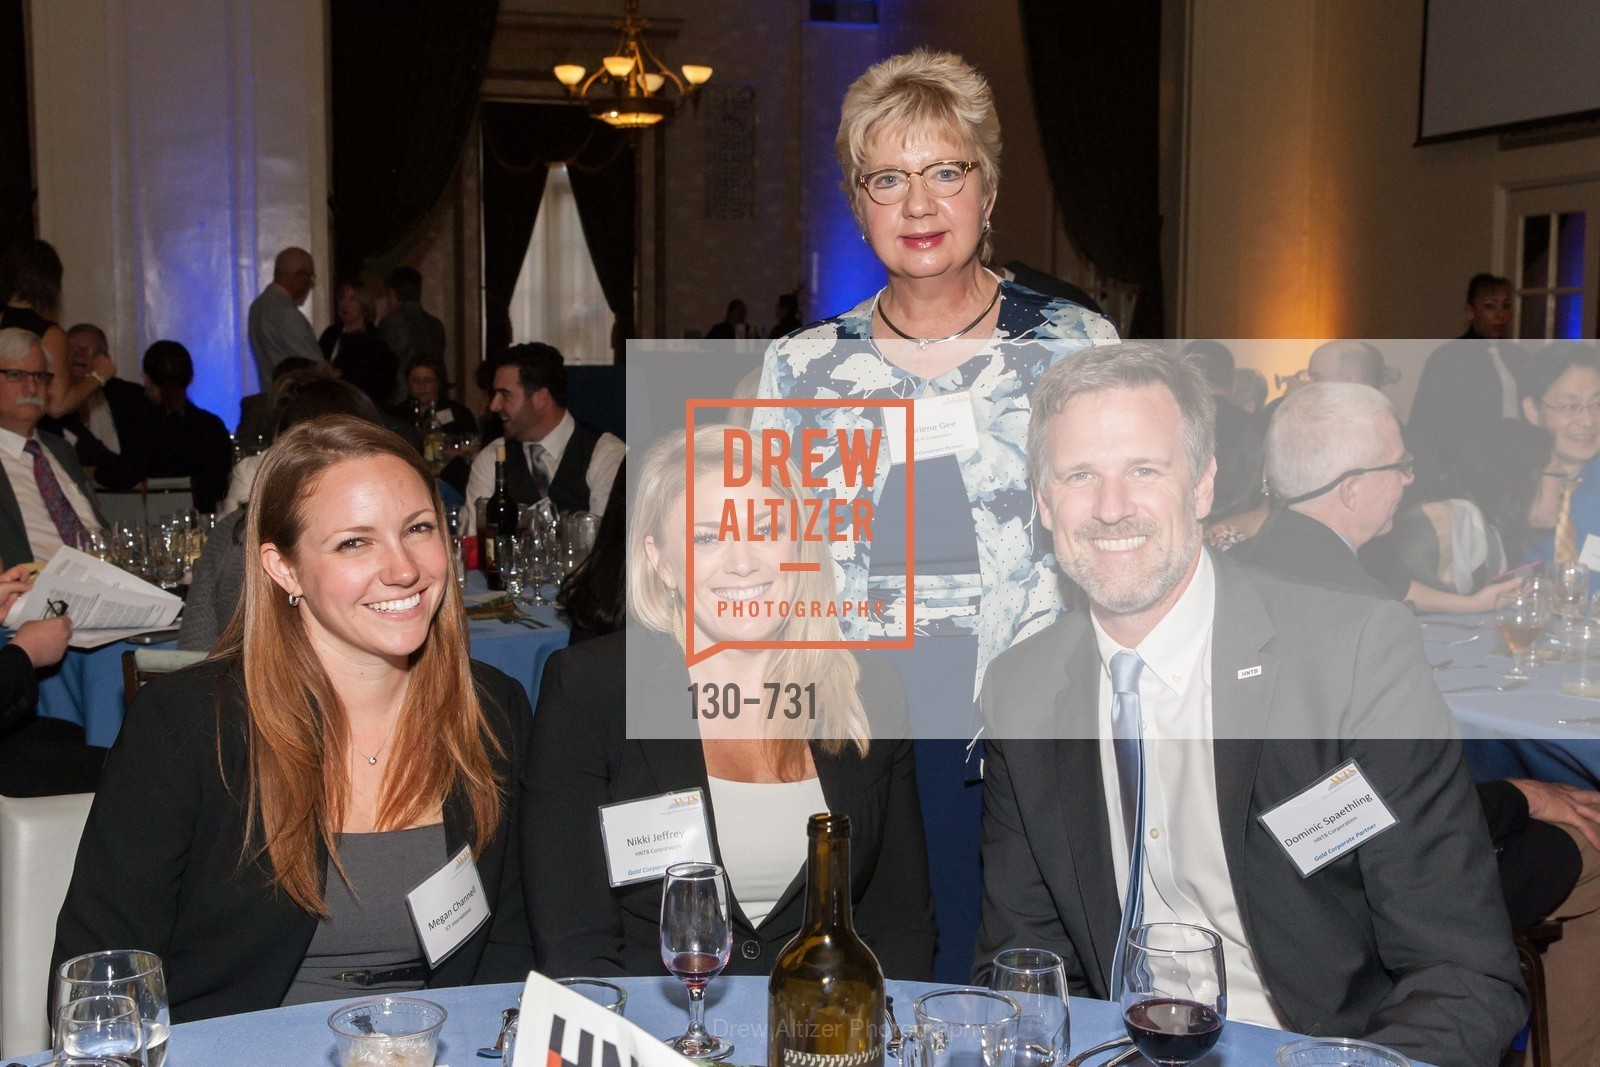 Megan Channell, Nikki Jeffrey, Darlene Gee, Dominic Spaethling, WOMEN'S TRANSPORTATION SEMINAR SF Bay Area Chapter Annual Scholarship Awards, US, May 15th, 2015,Drew Altizer, Drew Altizer Photography, full-service agency, private events, San Francisco photographer, photographer california